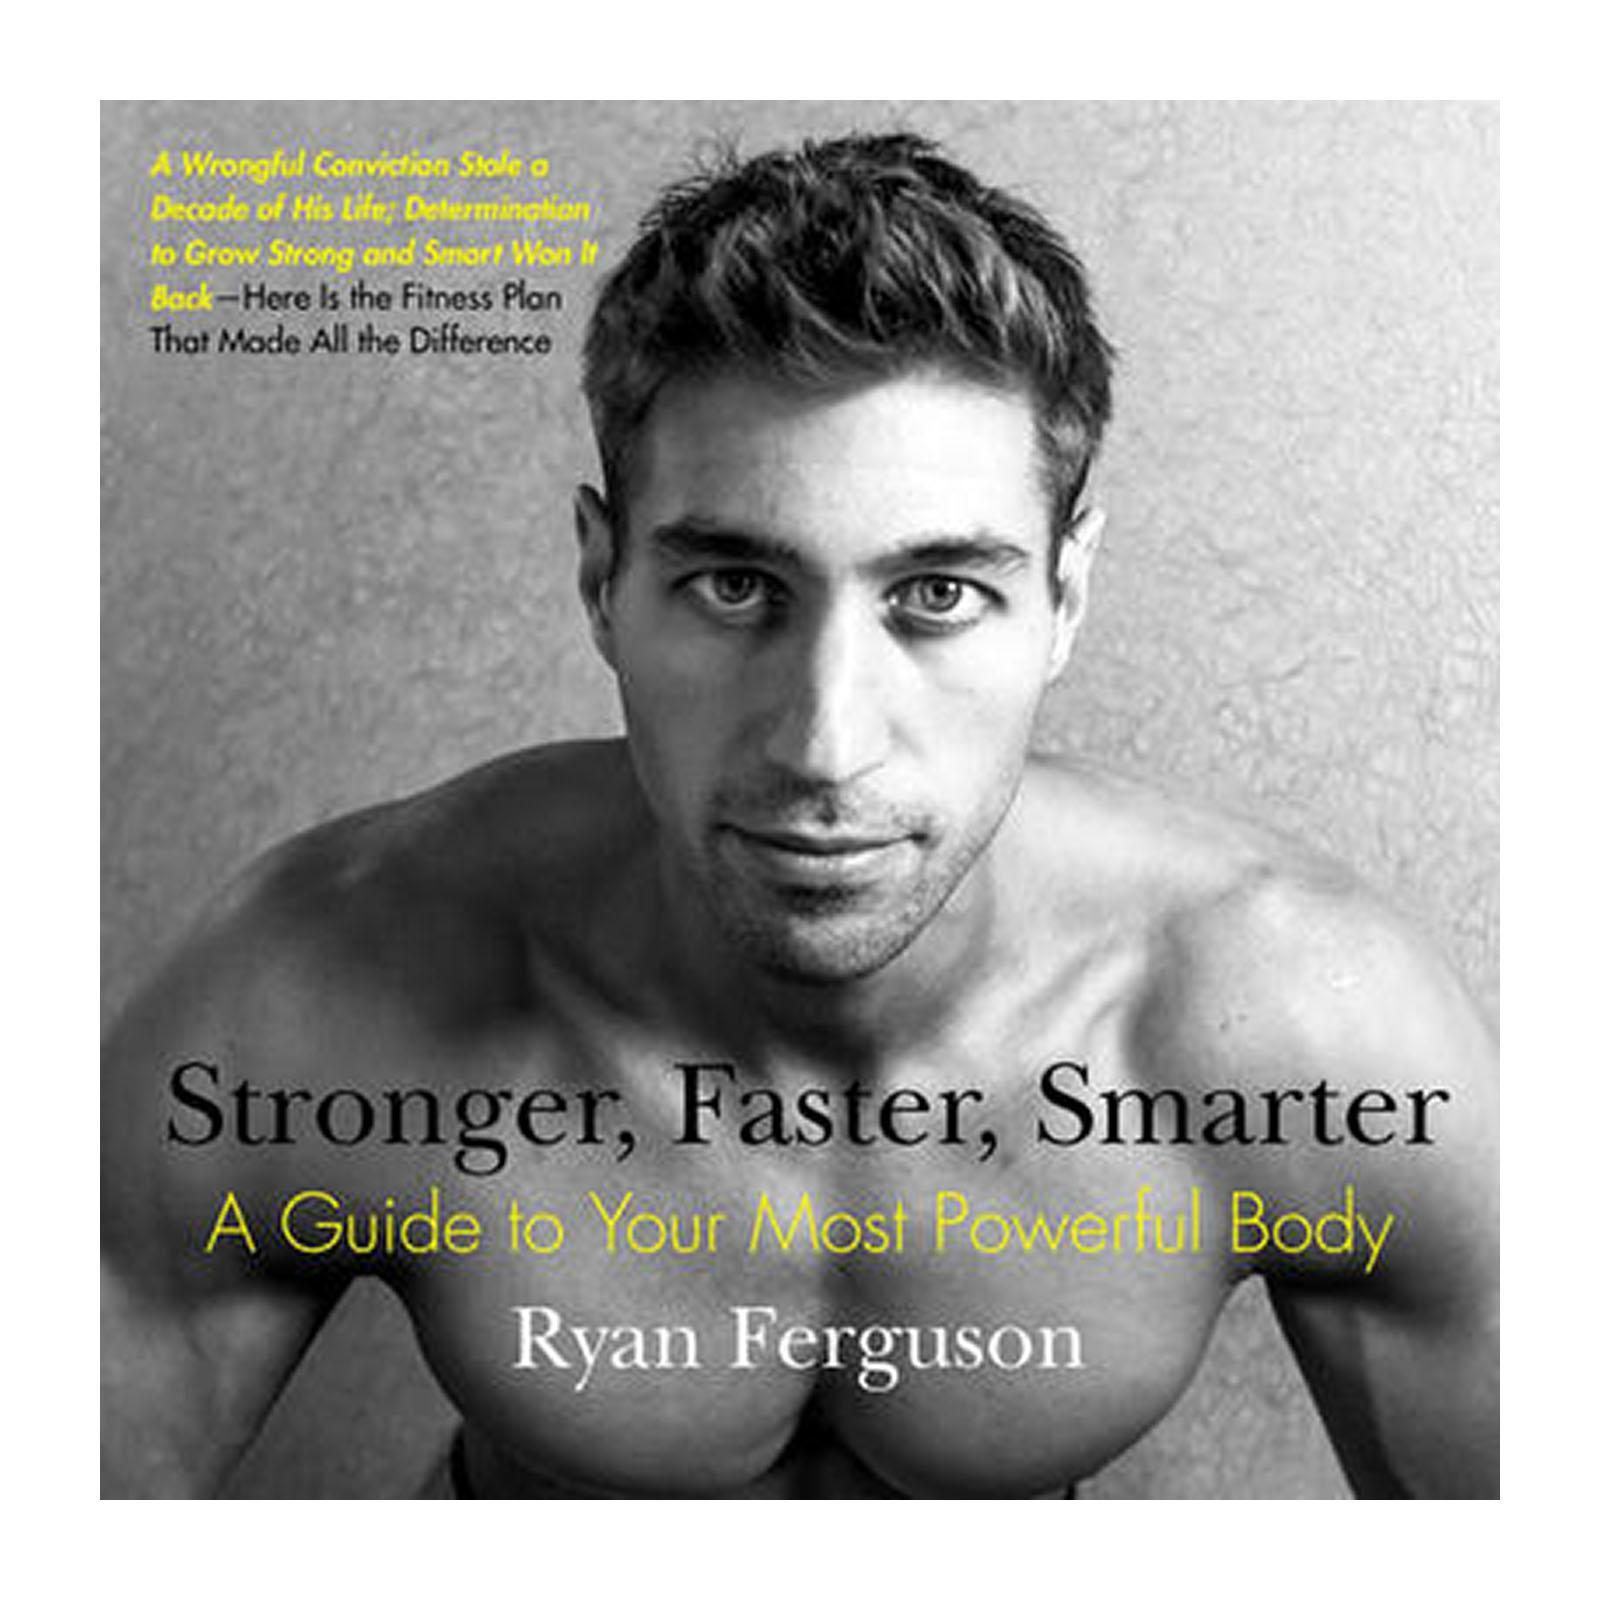 Stronger And Faster And Smarter: A Guide To Your Most Powerful Body (Paperback)